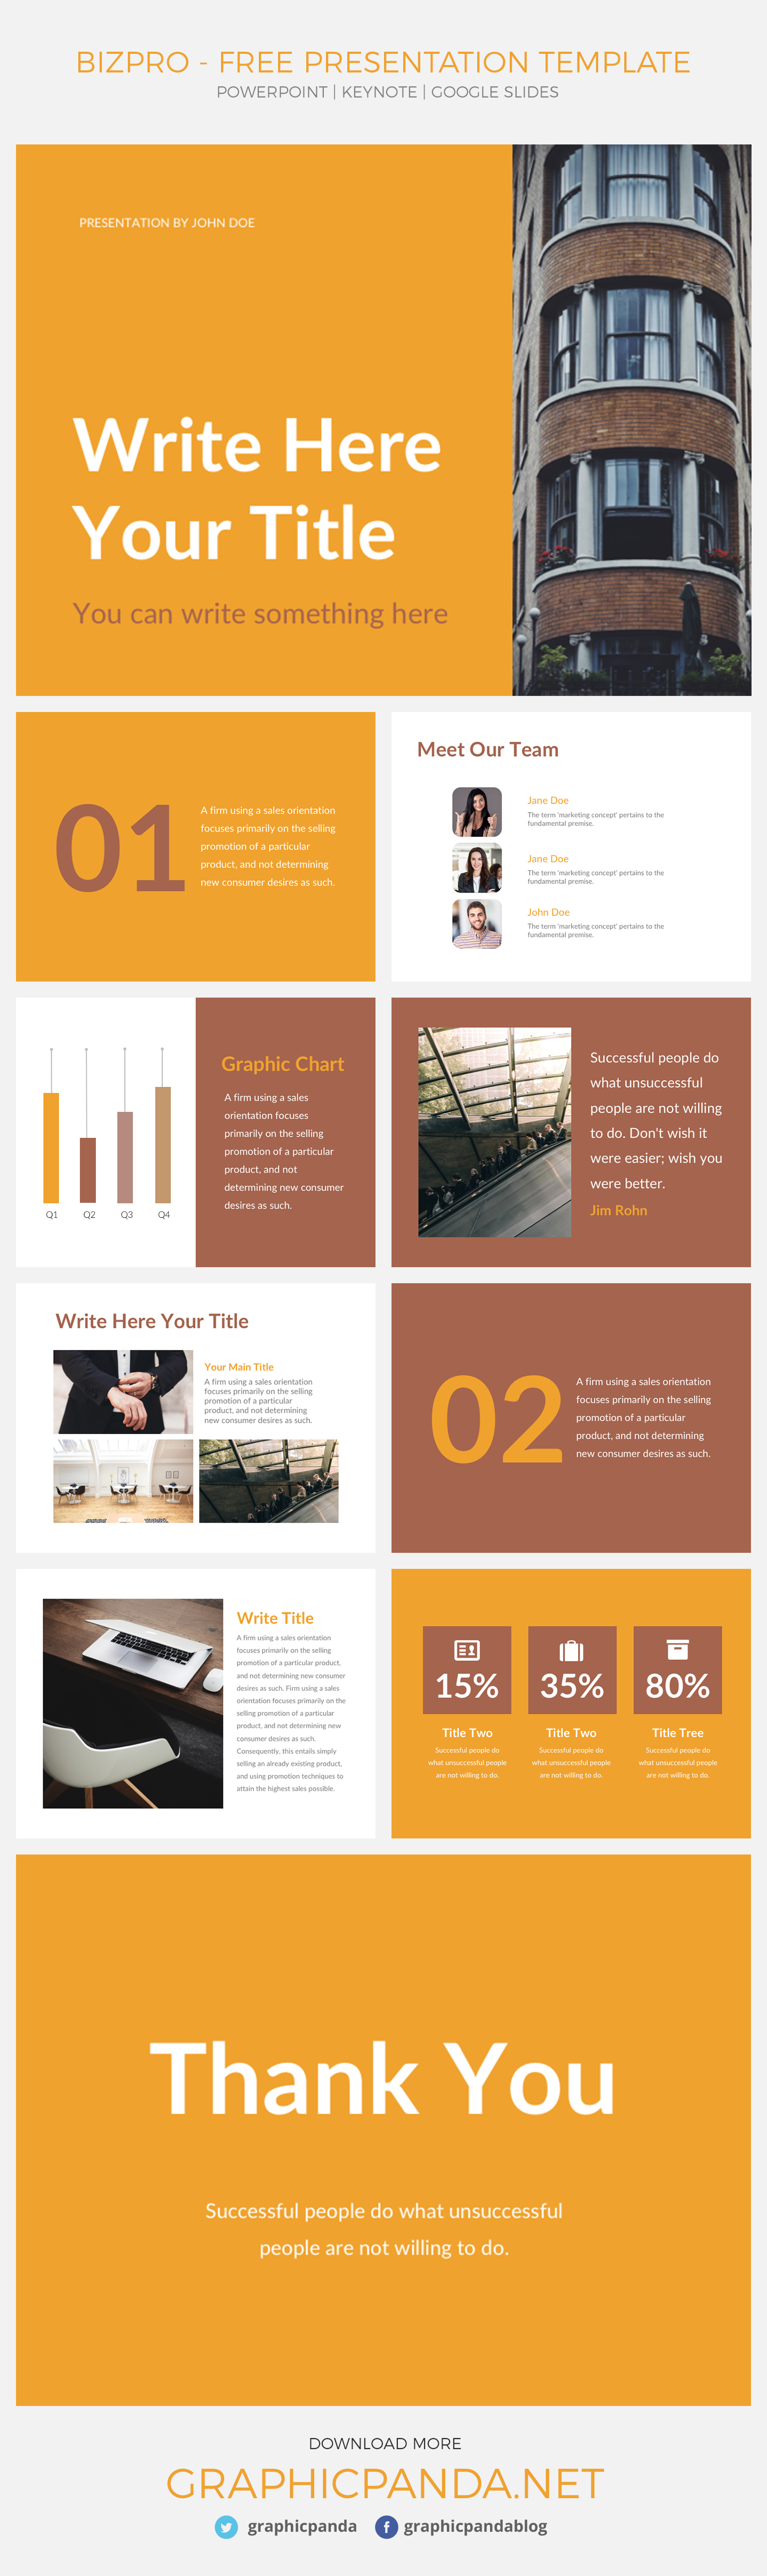 download more powerpoint designs